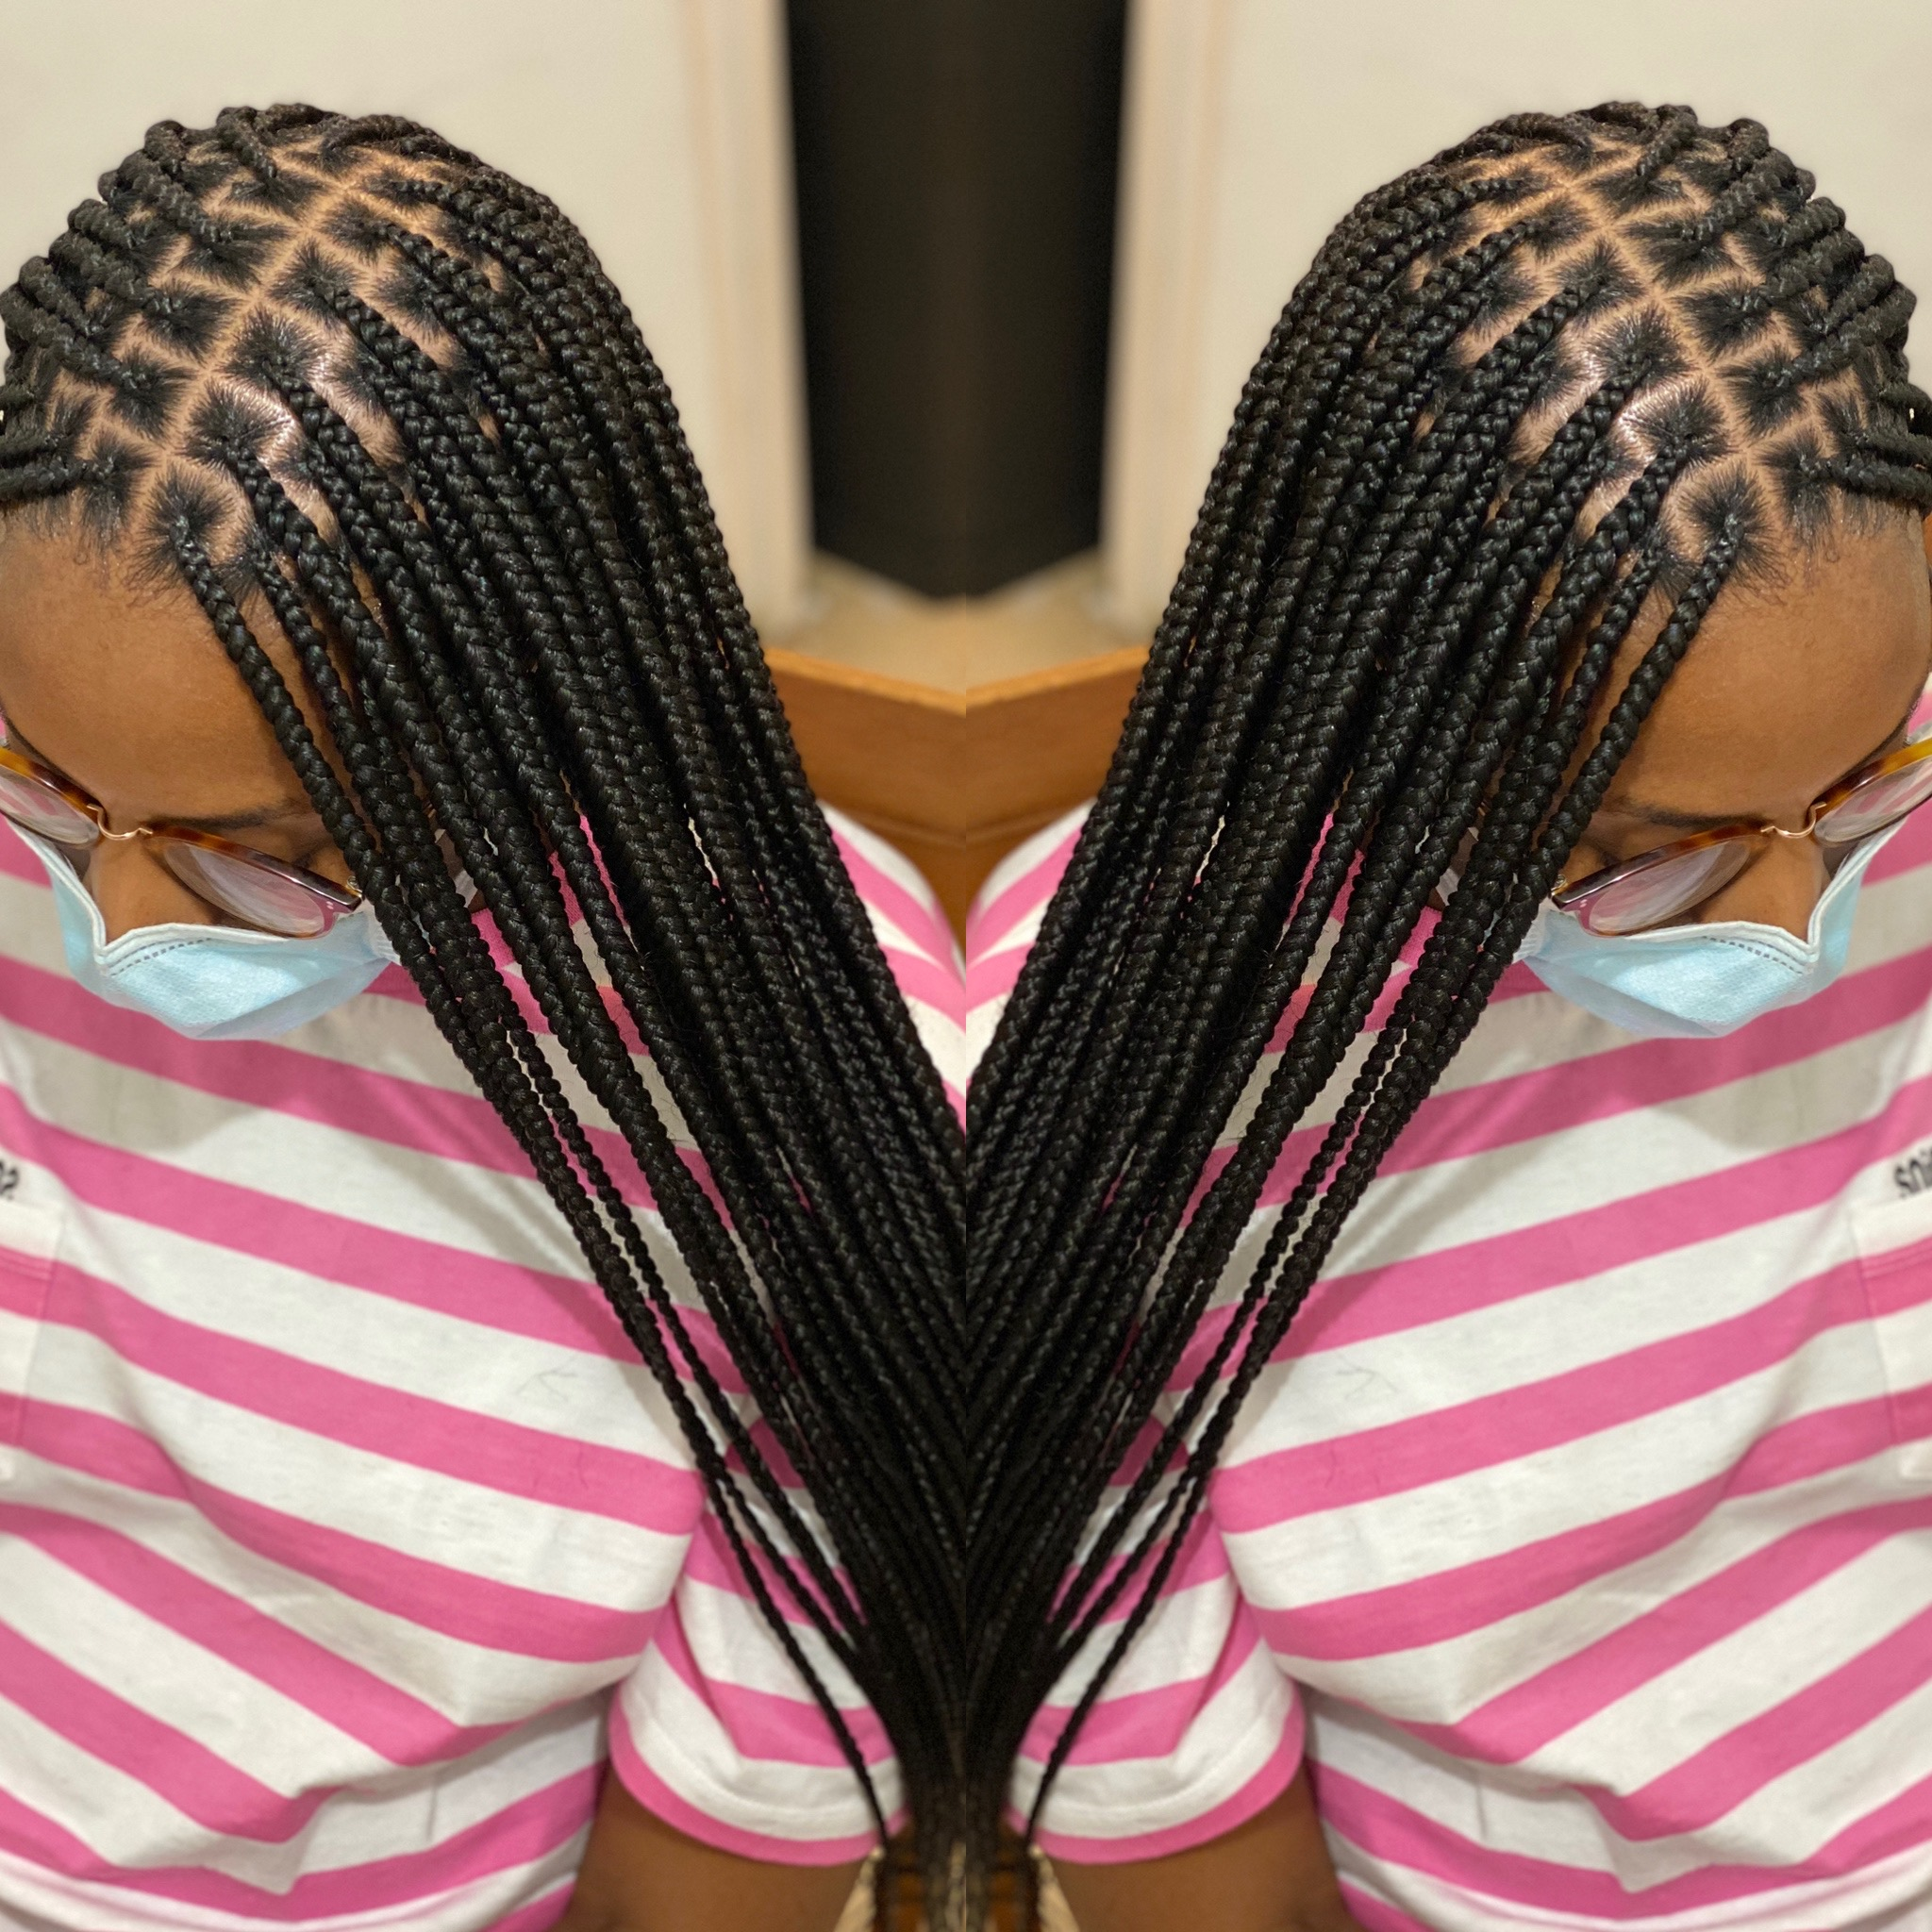 salon de coiffure afro tresse tresses box braids crochet braids vanilles tissages paris 75 77 78 91 92 93 94 95 CKCTLTZA